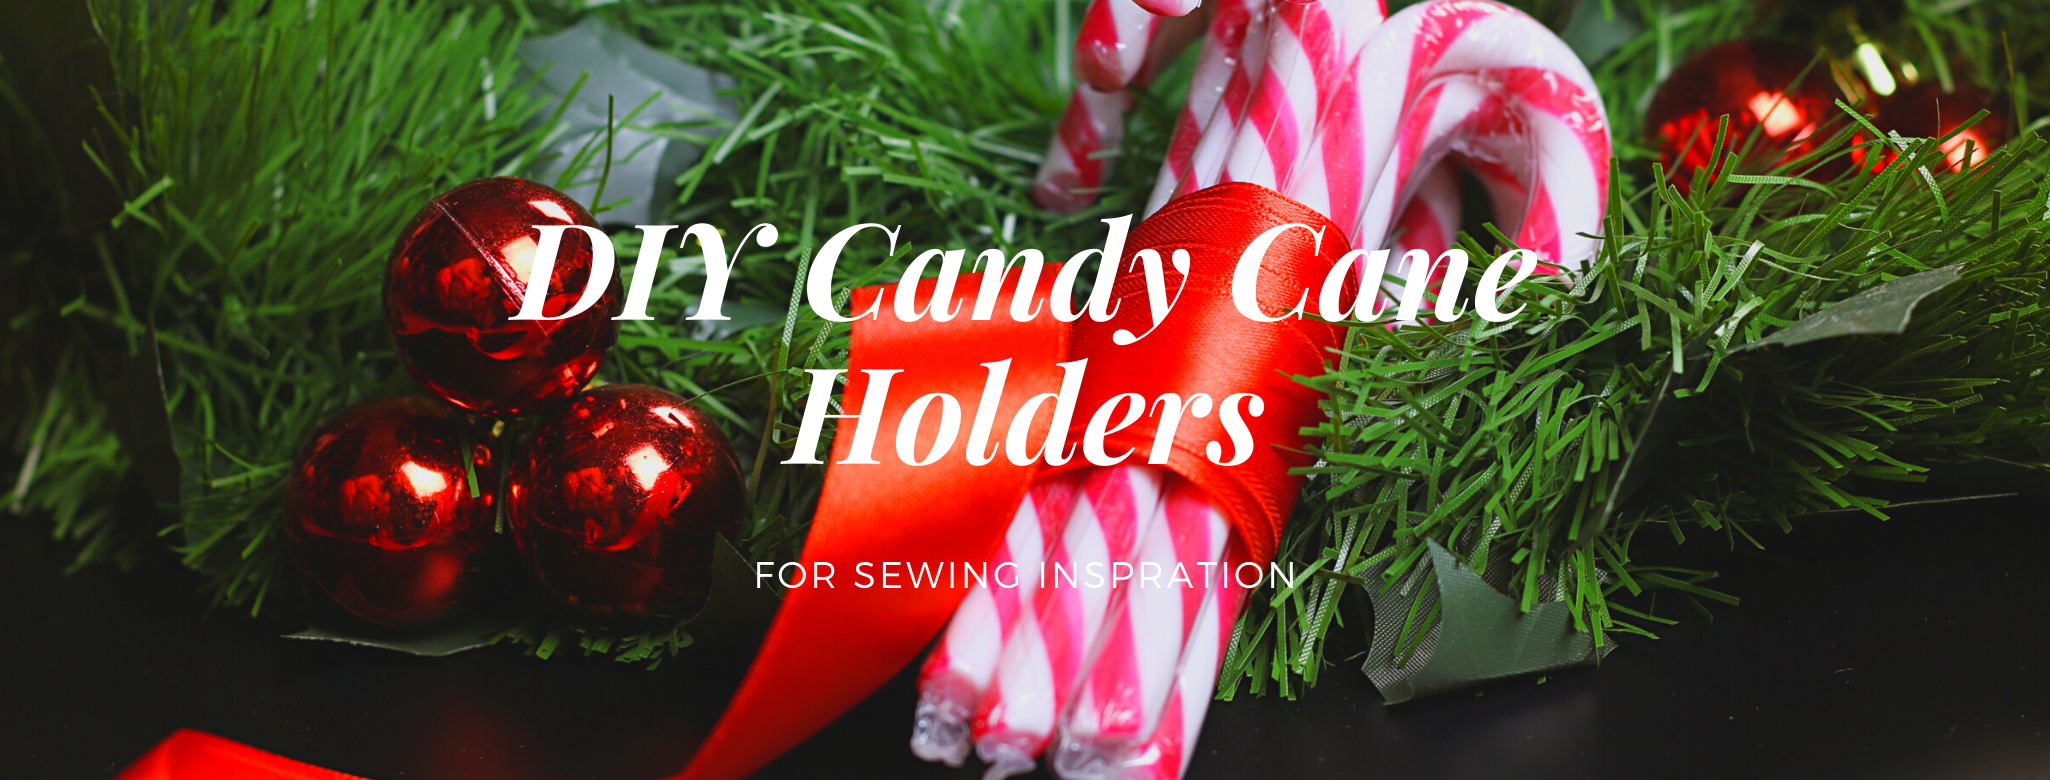 DIY Candy Cane Holders for Inspiration